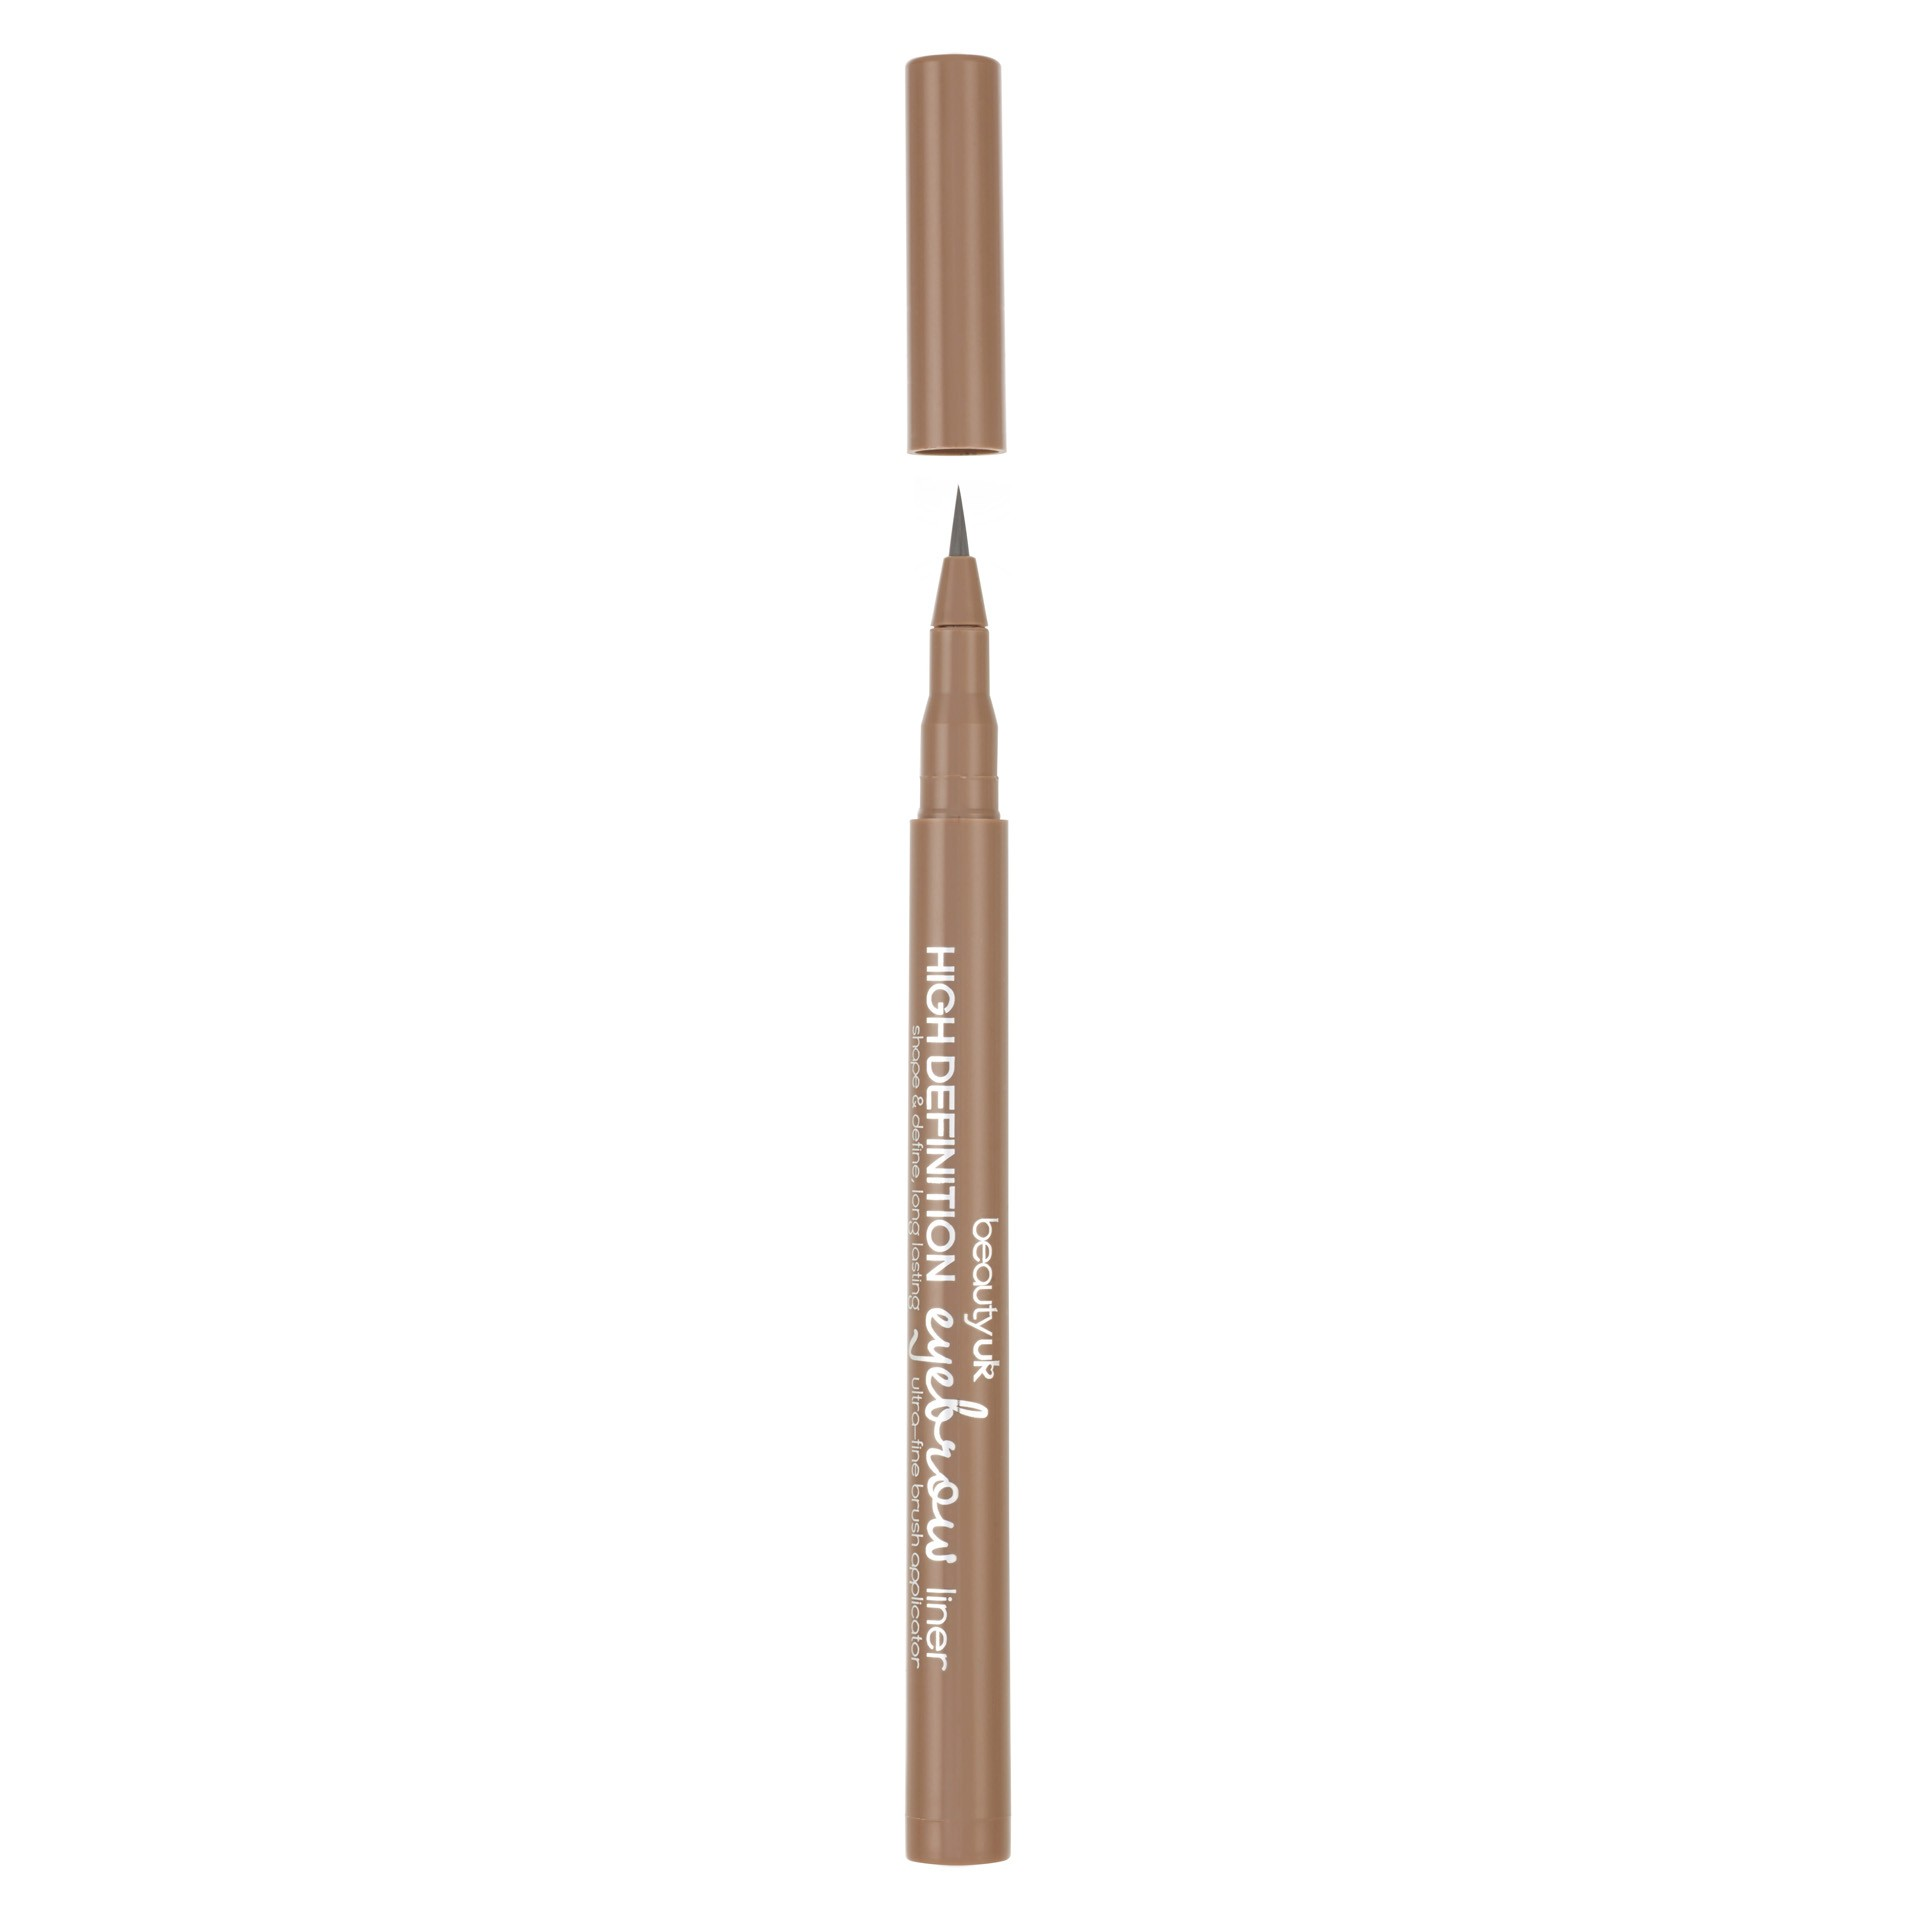 Augenbrauen-Stift - High Definition Eyebrow Liner